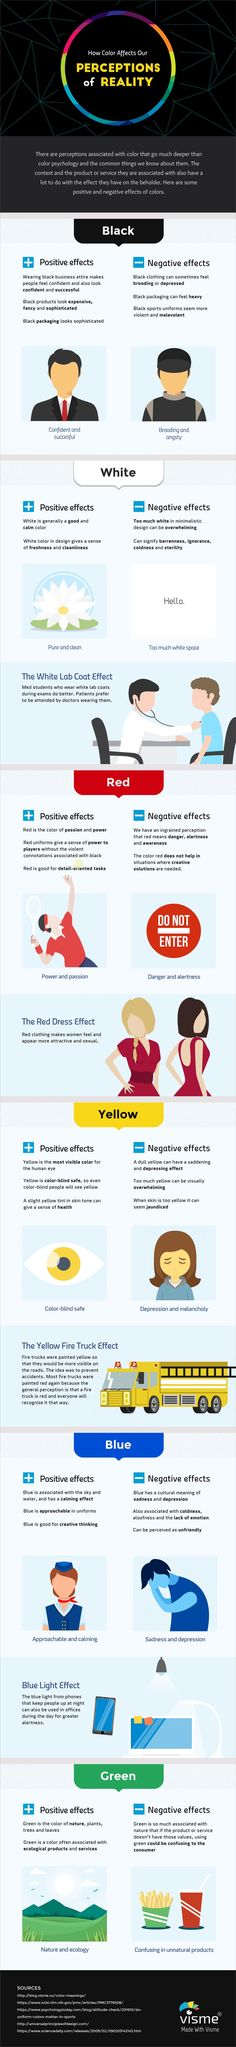 [Infographic] How color perception affects different aspects of our lives